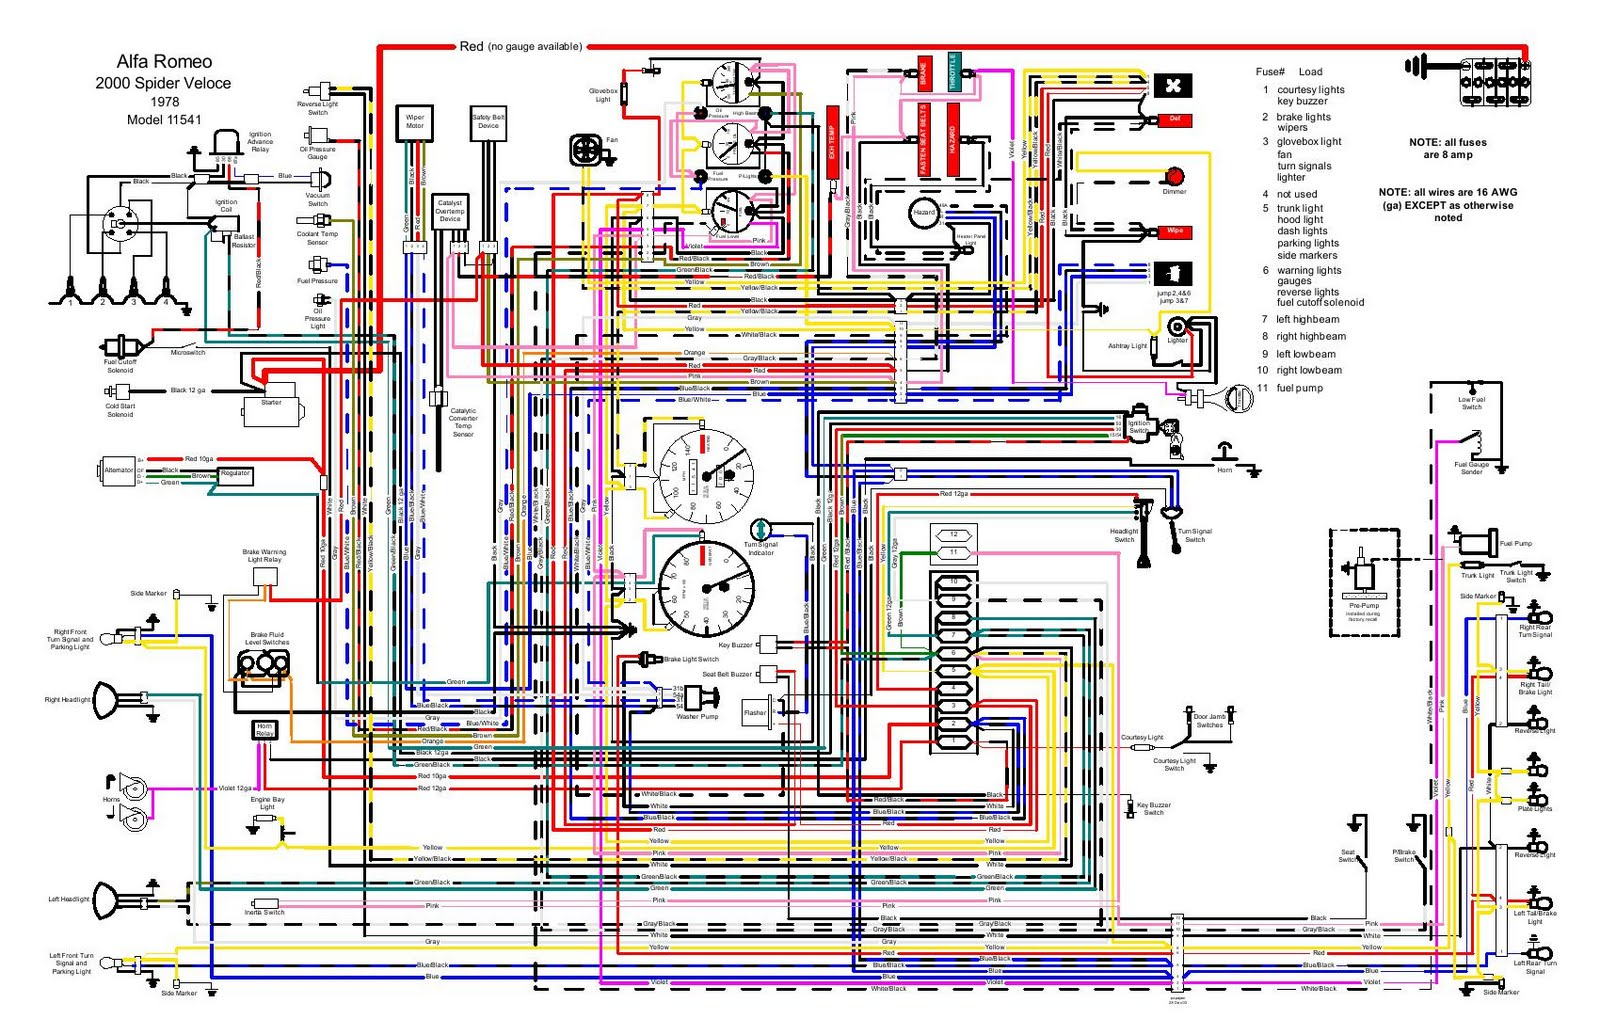 wiring diagram for 1978 alfa romeo spider CHaEWjz wiring diagrams cars readingrat net wiring schematics for cars at reclaimingppi.co